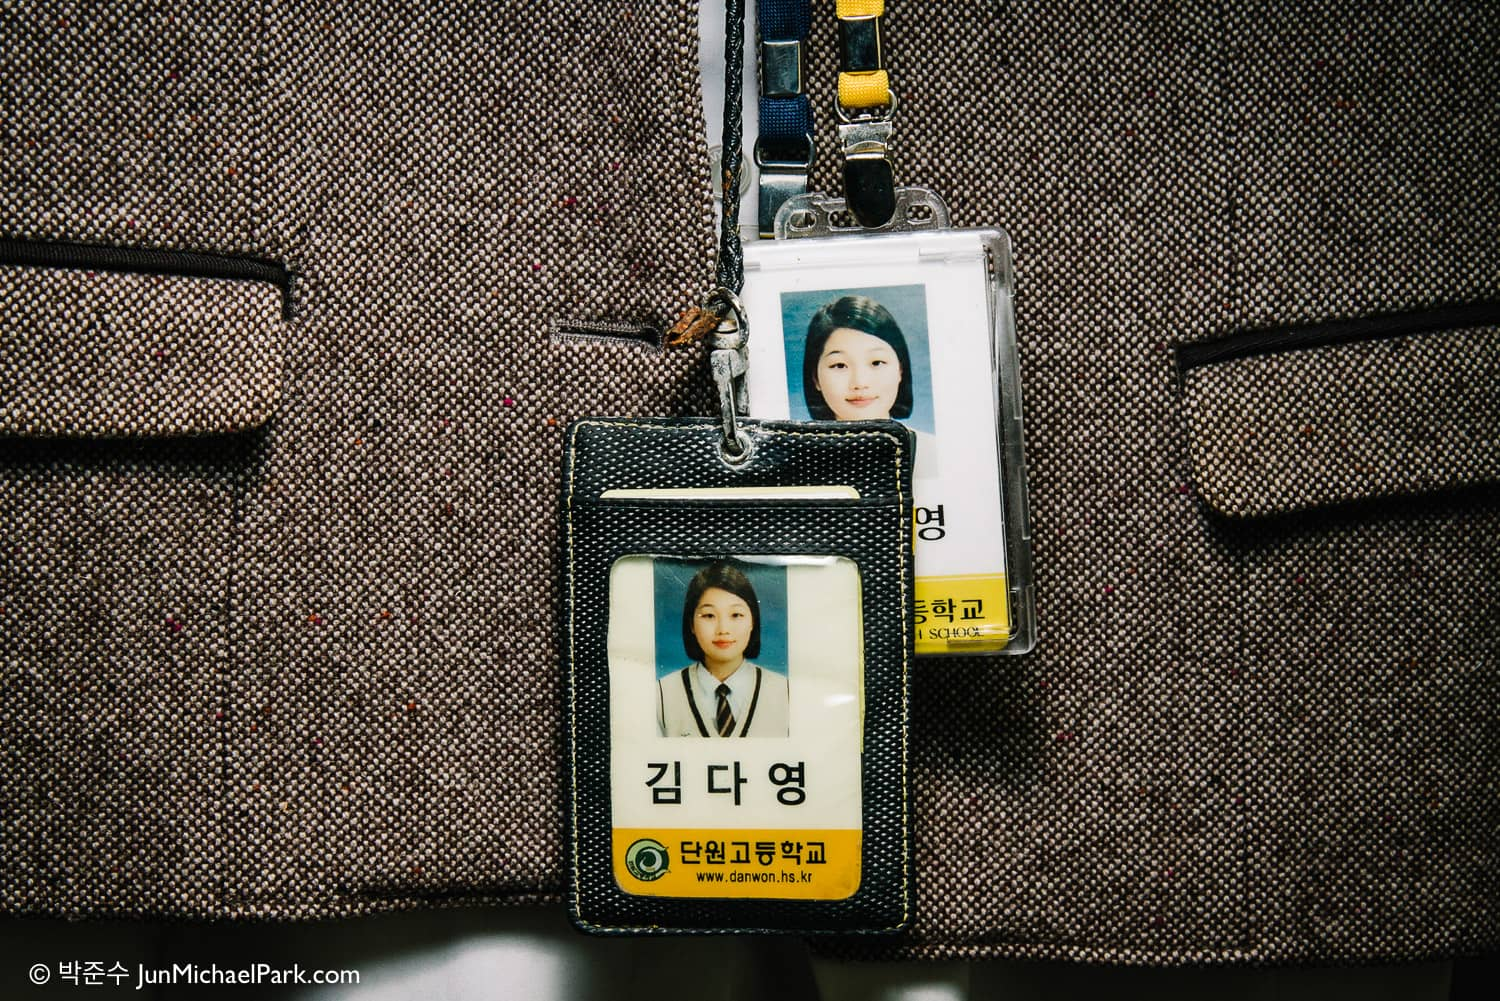 Da-young's original student ID on the front was retrieved from the sunken ferry along with her other belongings. Sea water has corroded the metal chain. It alludes to a slow and painful death by drowning.